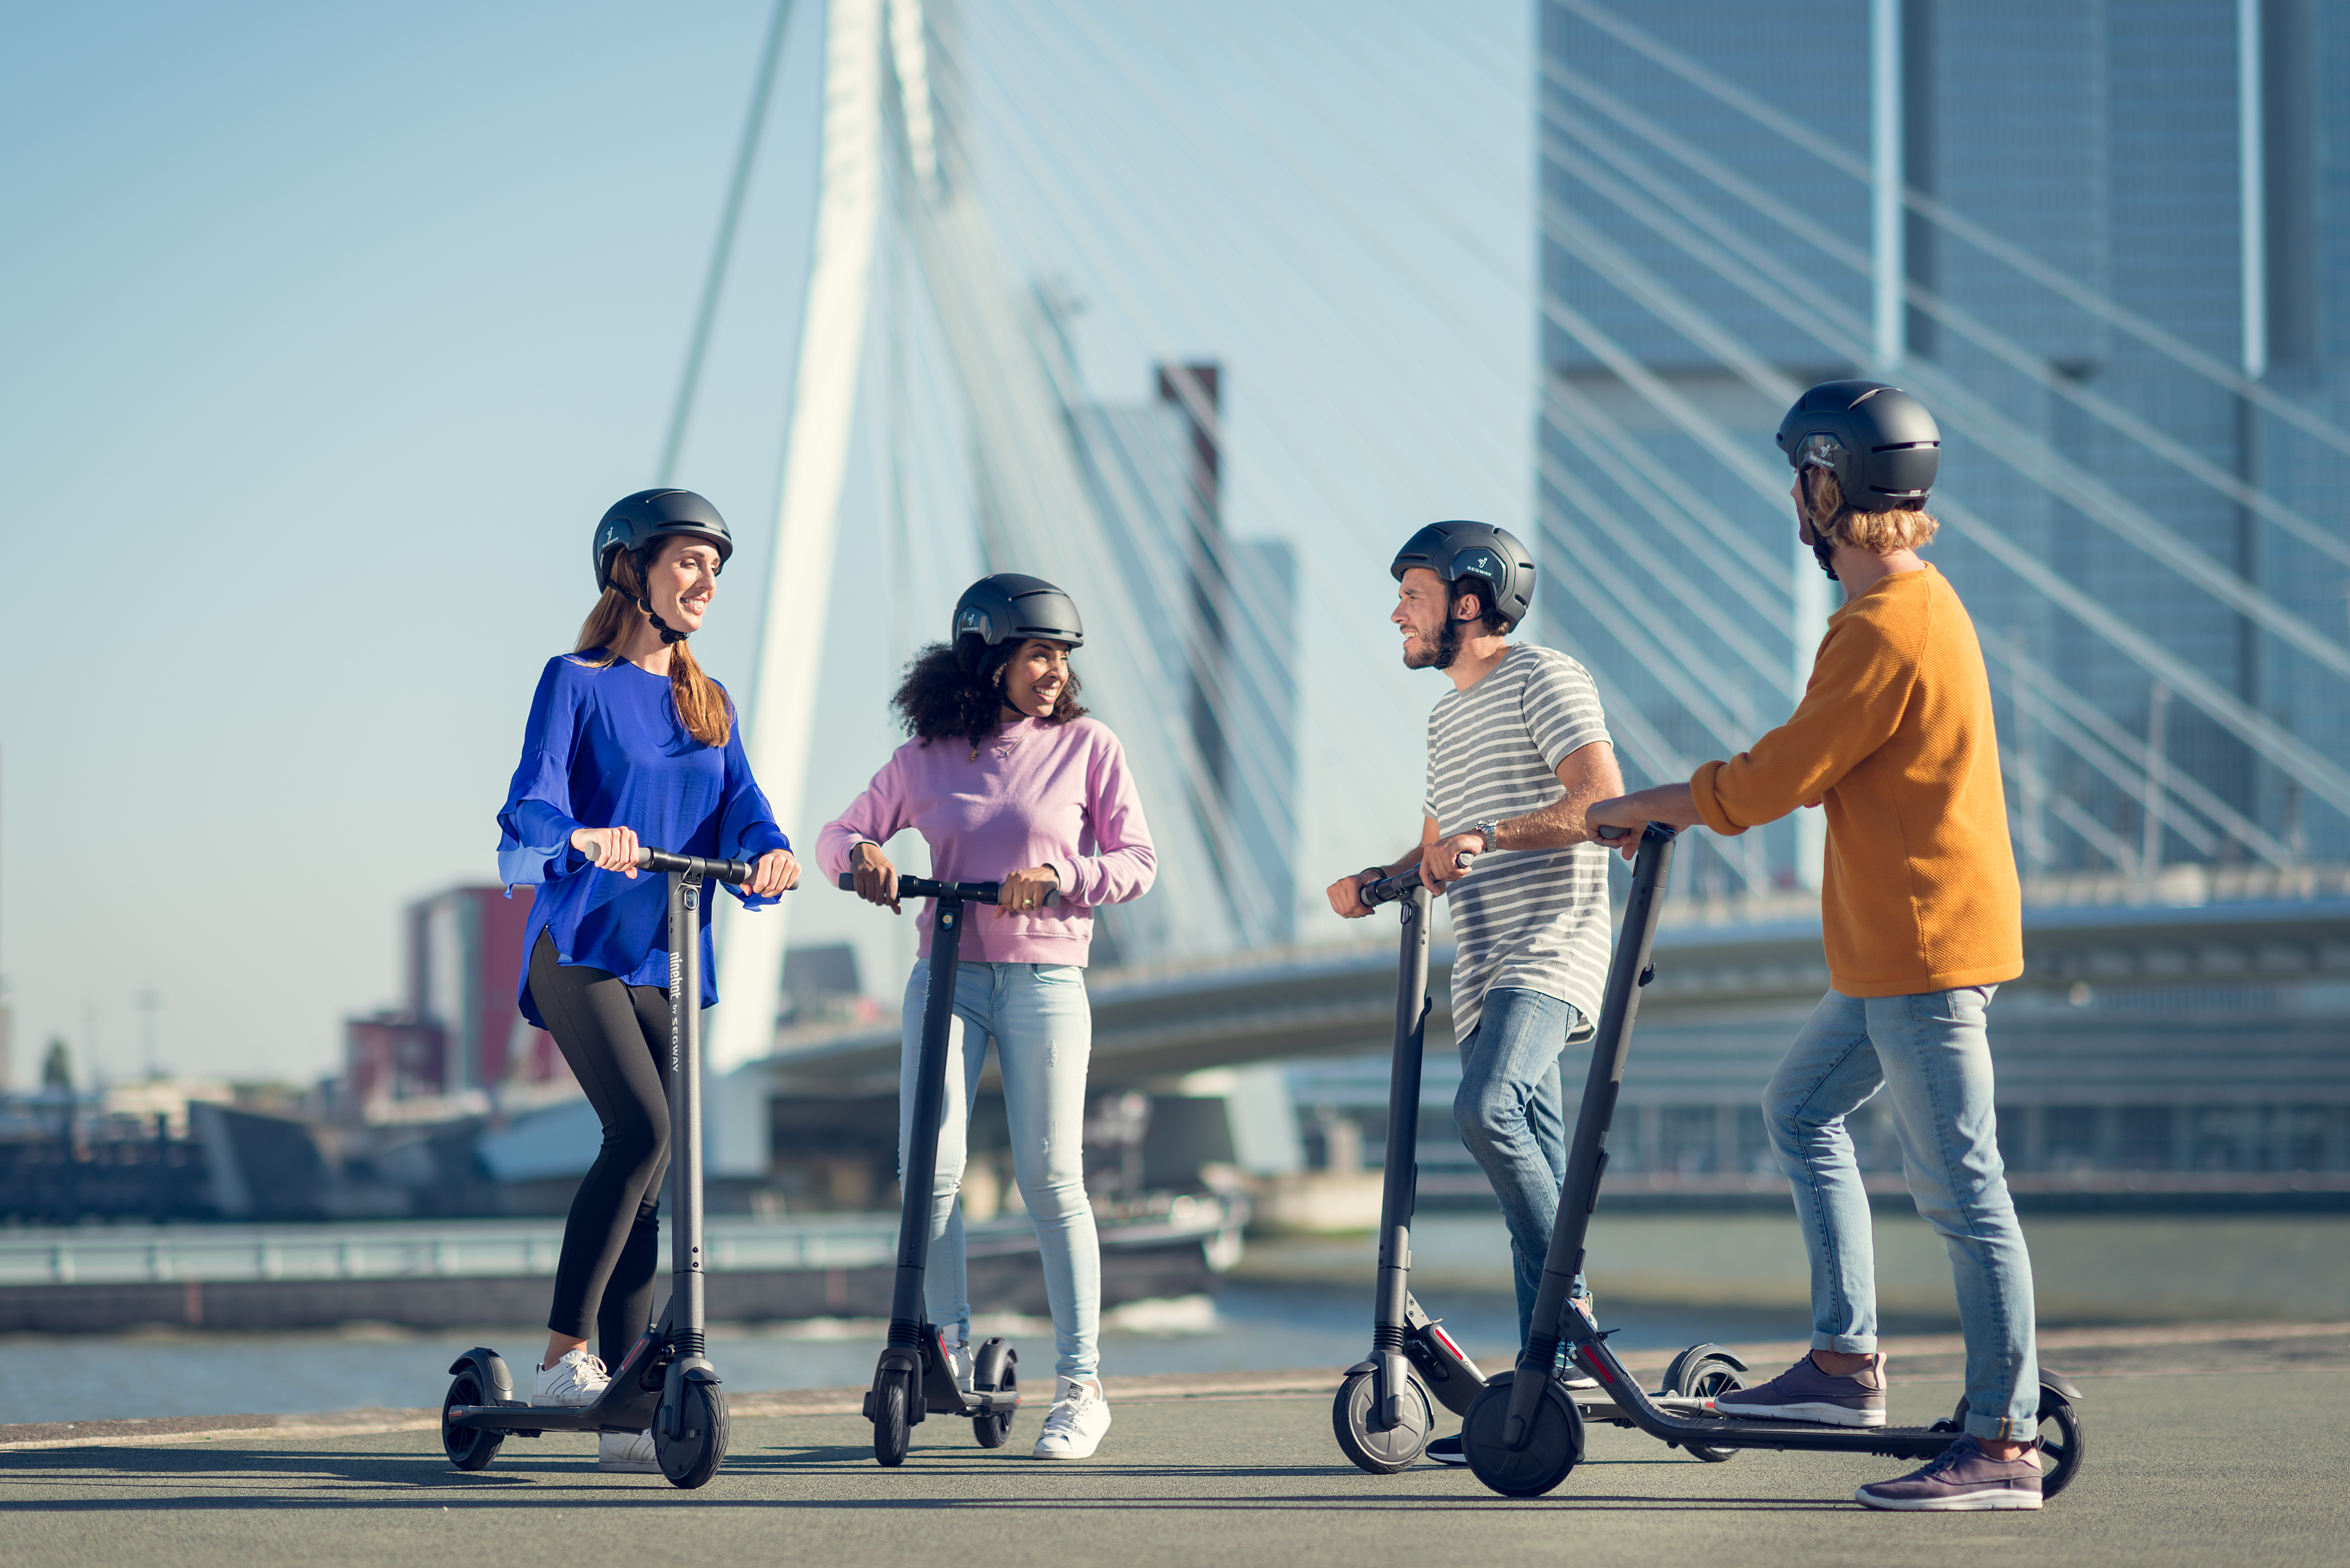 Segway-Ninebot Furthers Its Mission to Own the Future of